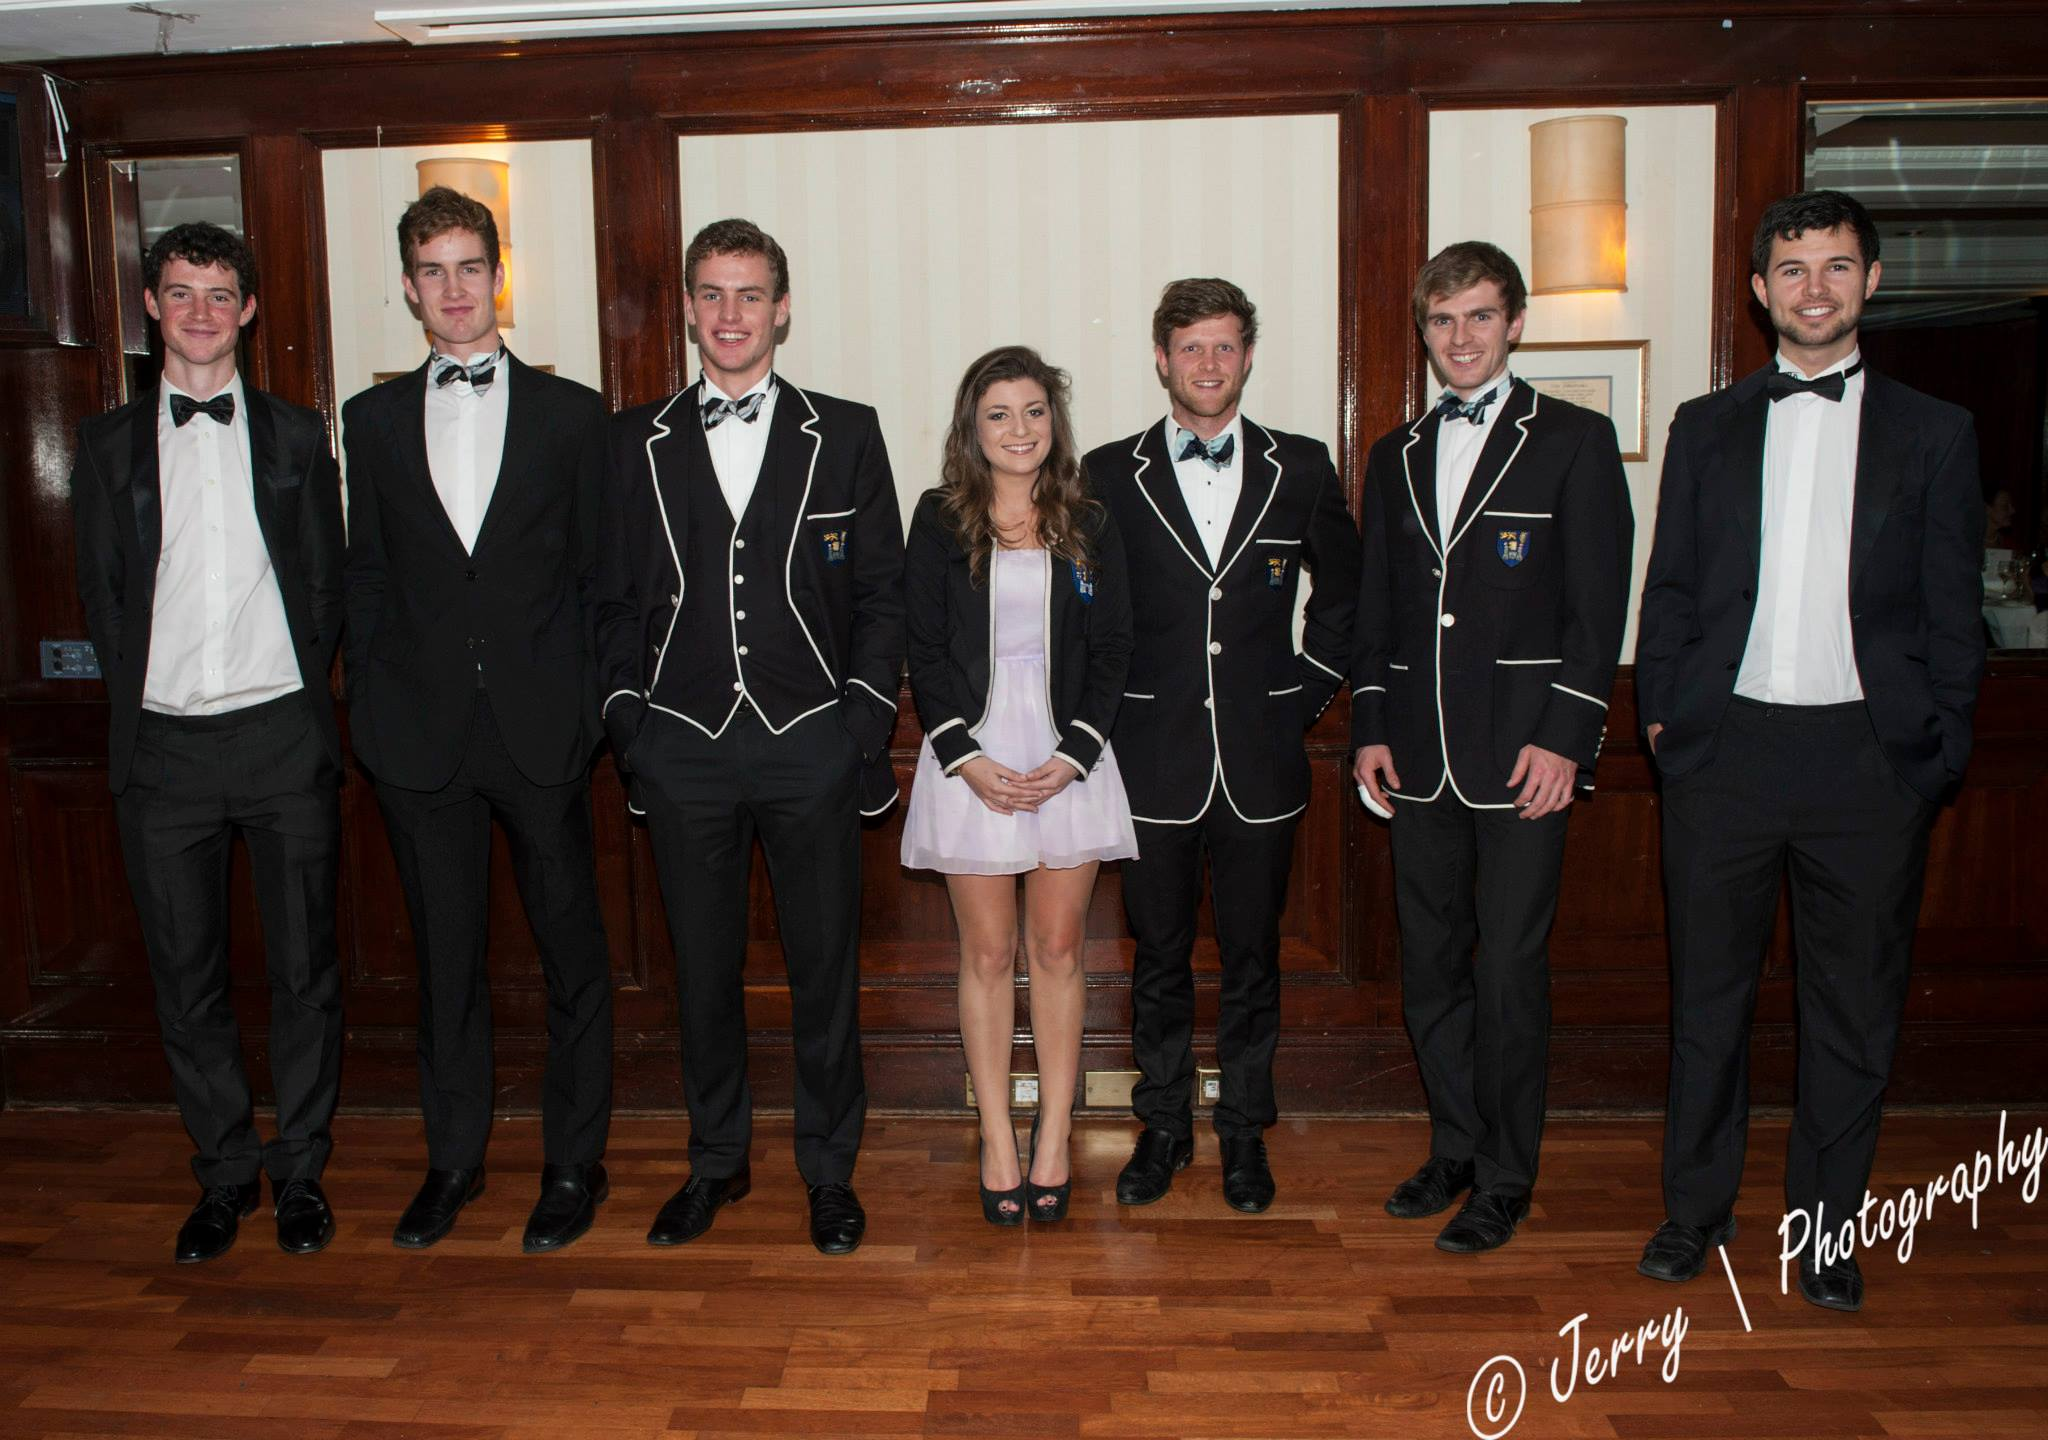 Intermediate 8+ Champions of Ireland (From left to right) - Mark Kelly, Patrick Moreau, Michael Corcoran, Ciara Sheehan, David Butler, Ian Hurley, John Magan. Missing: Liam Hawkes, Alexander McElroy